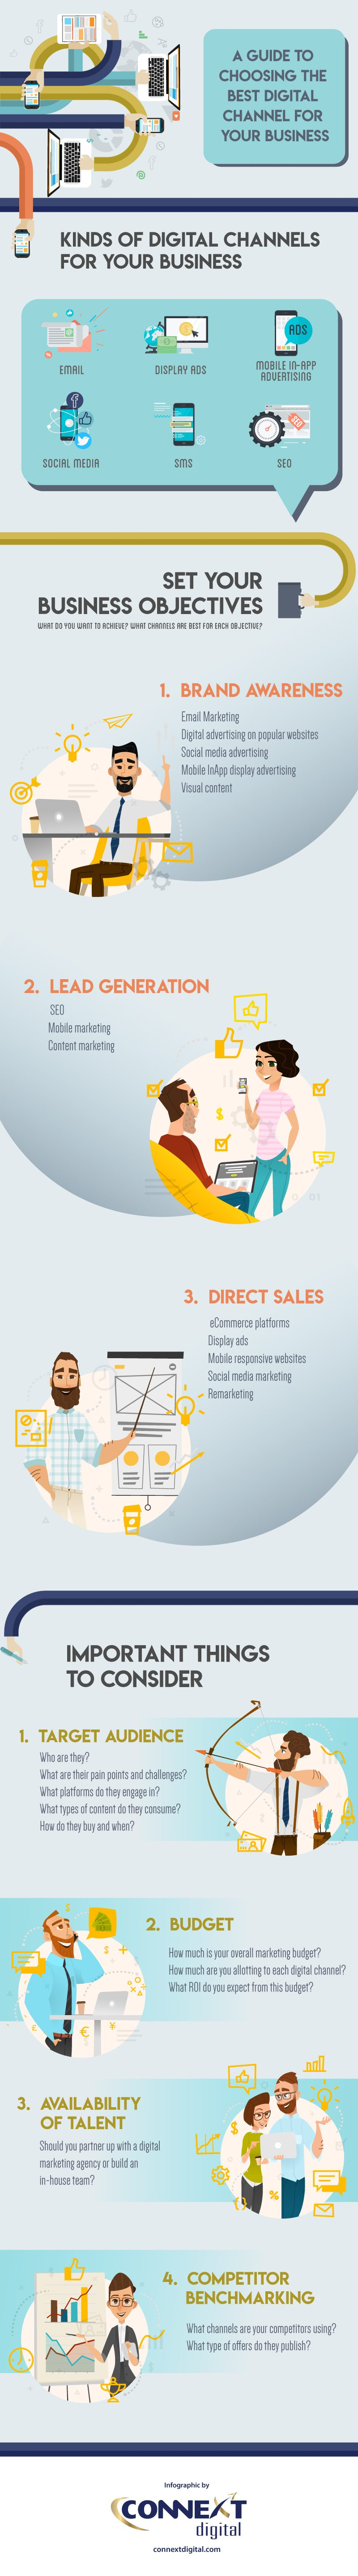 Infographic: Which really is the best digital marketing channel for your small business?